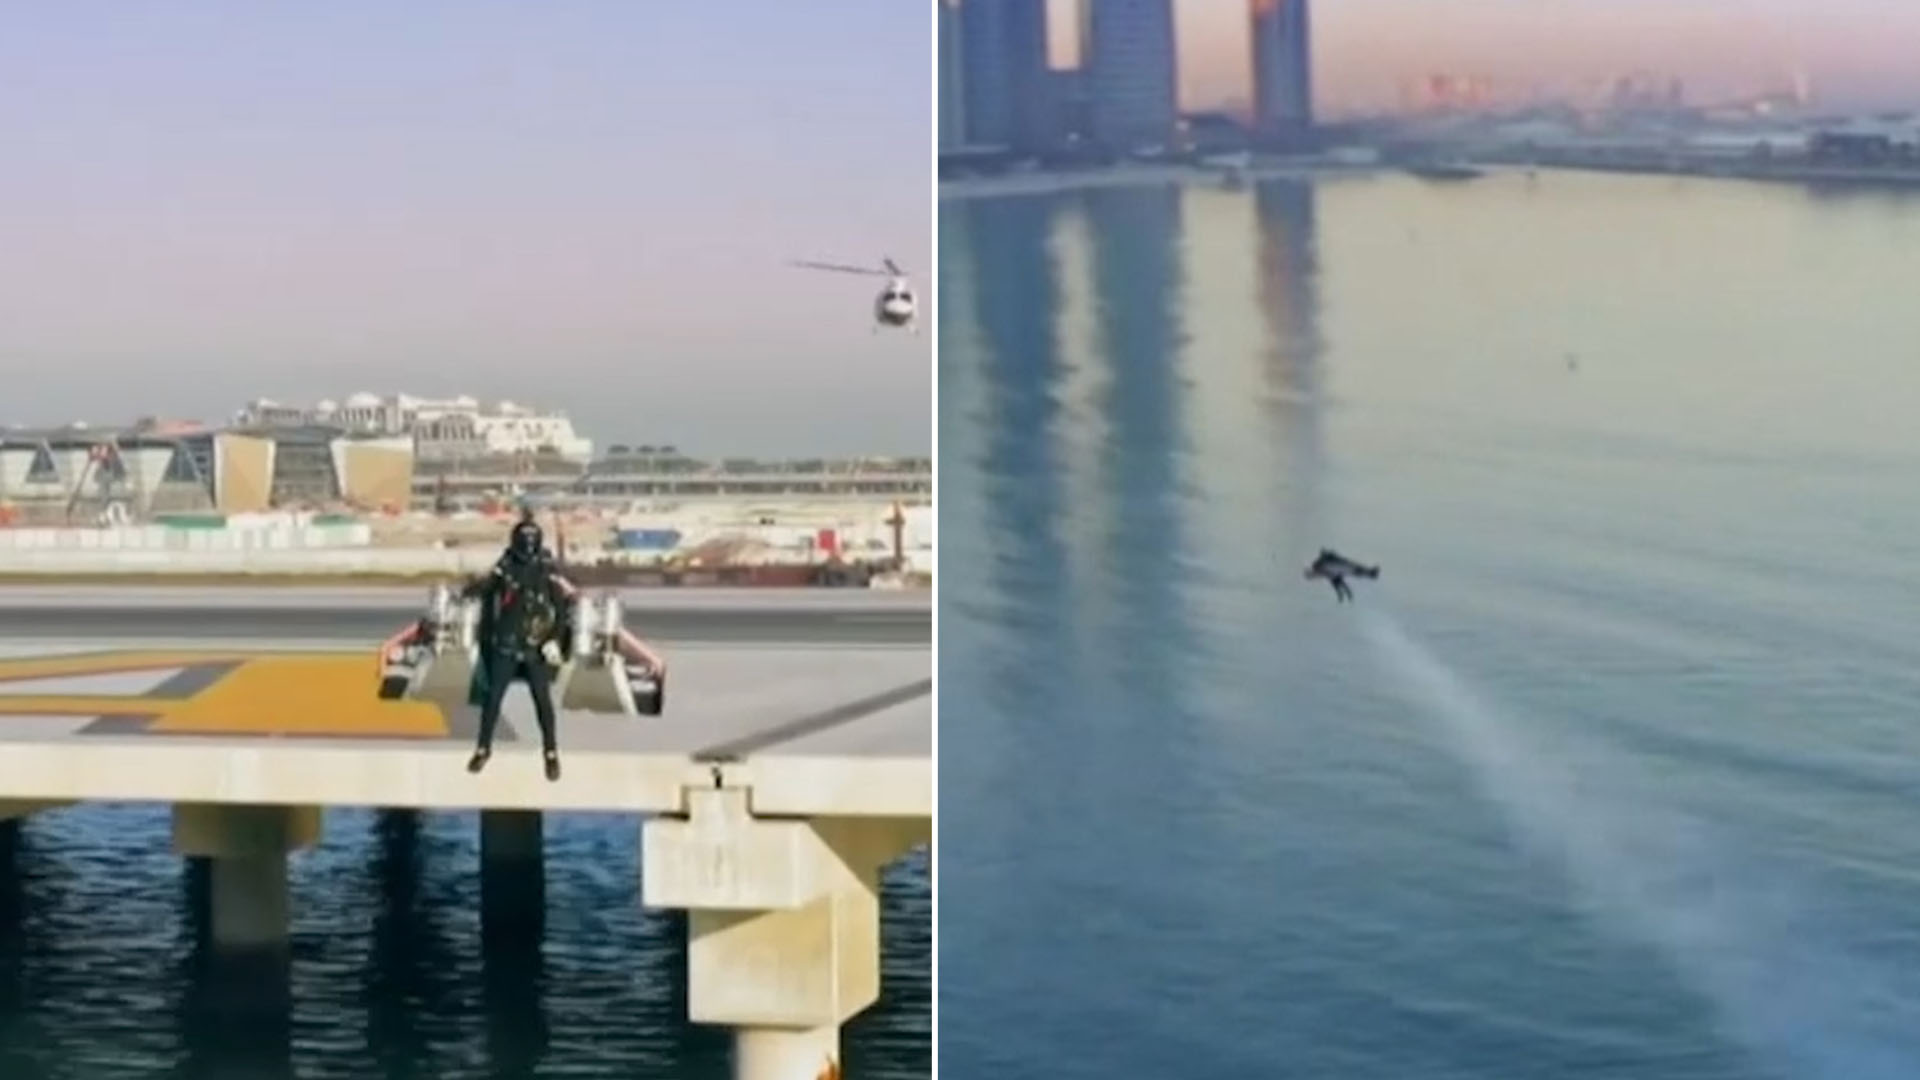 Wonderful video shows man flying high above Dubai with jet-powered wings